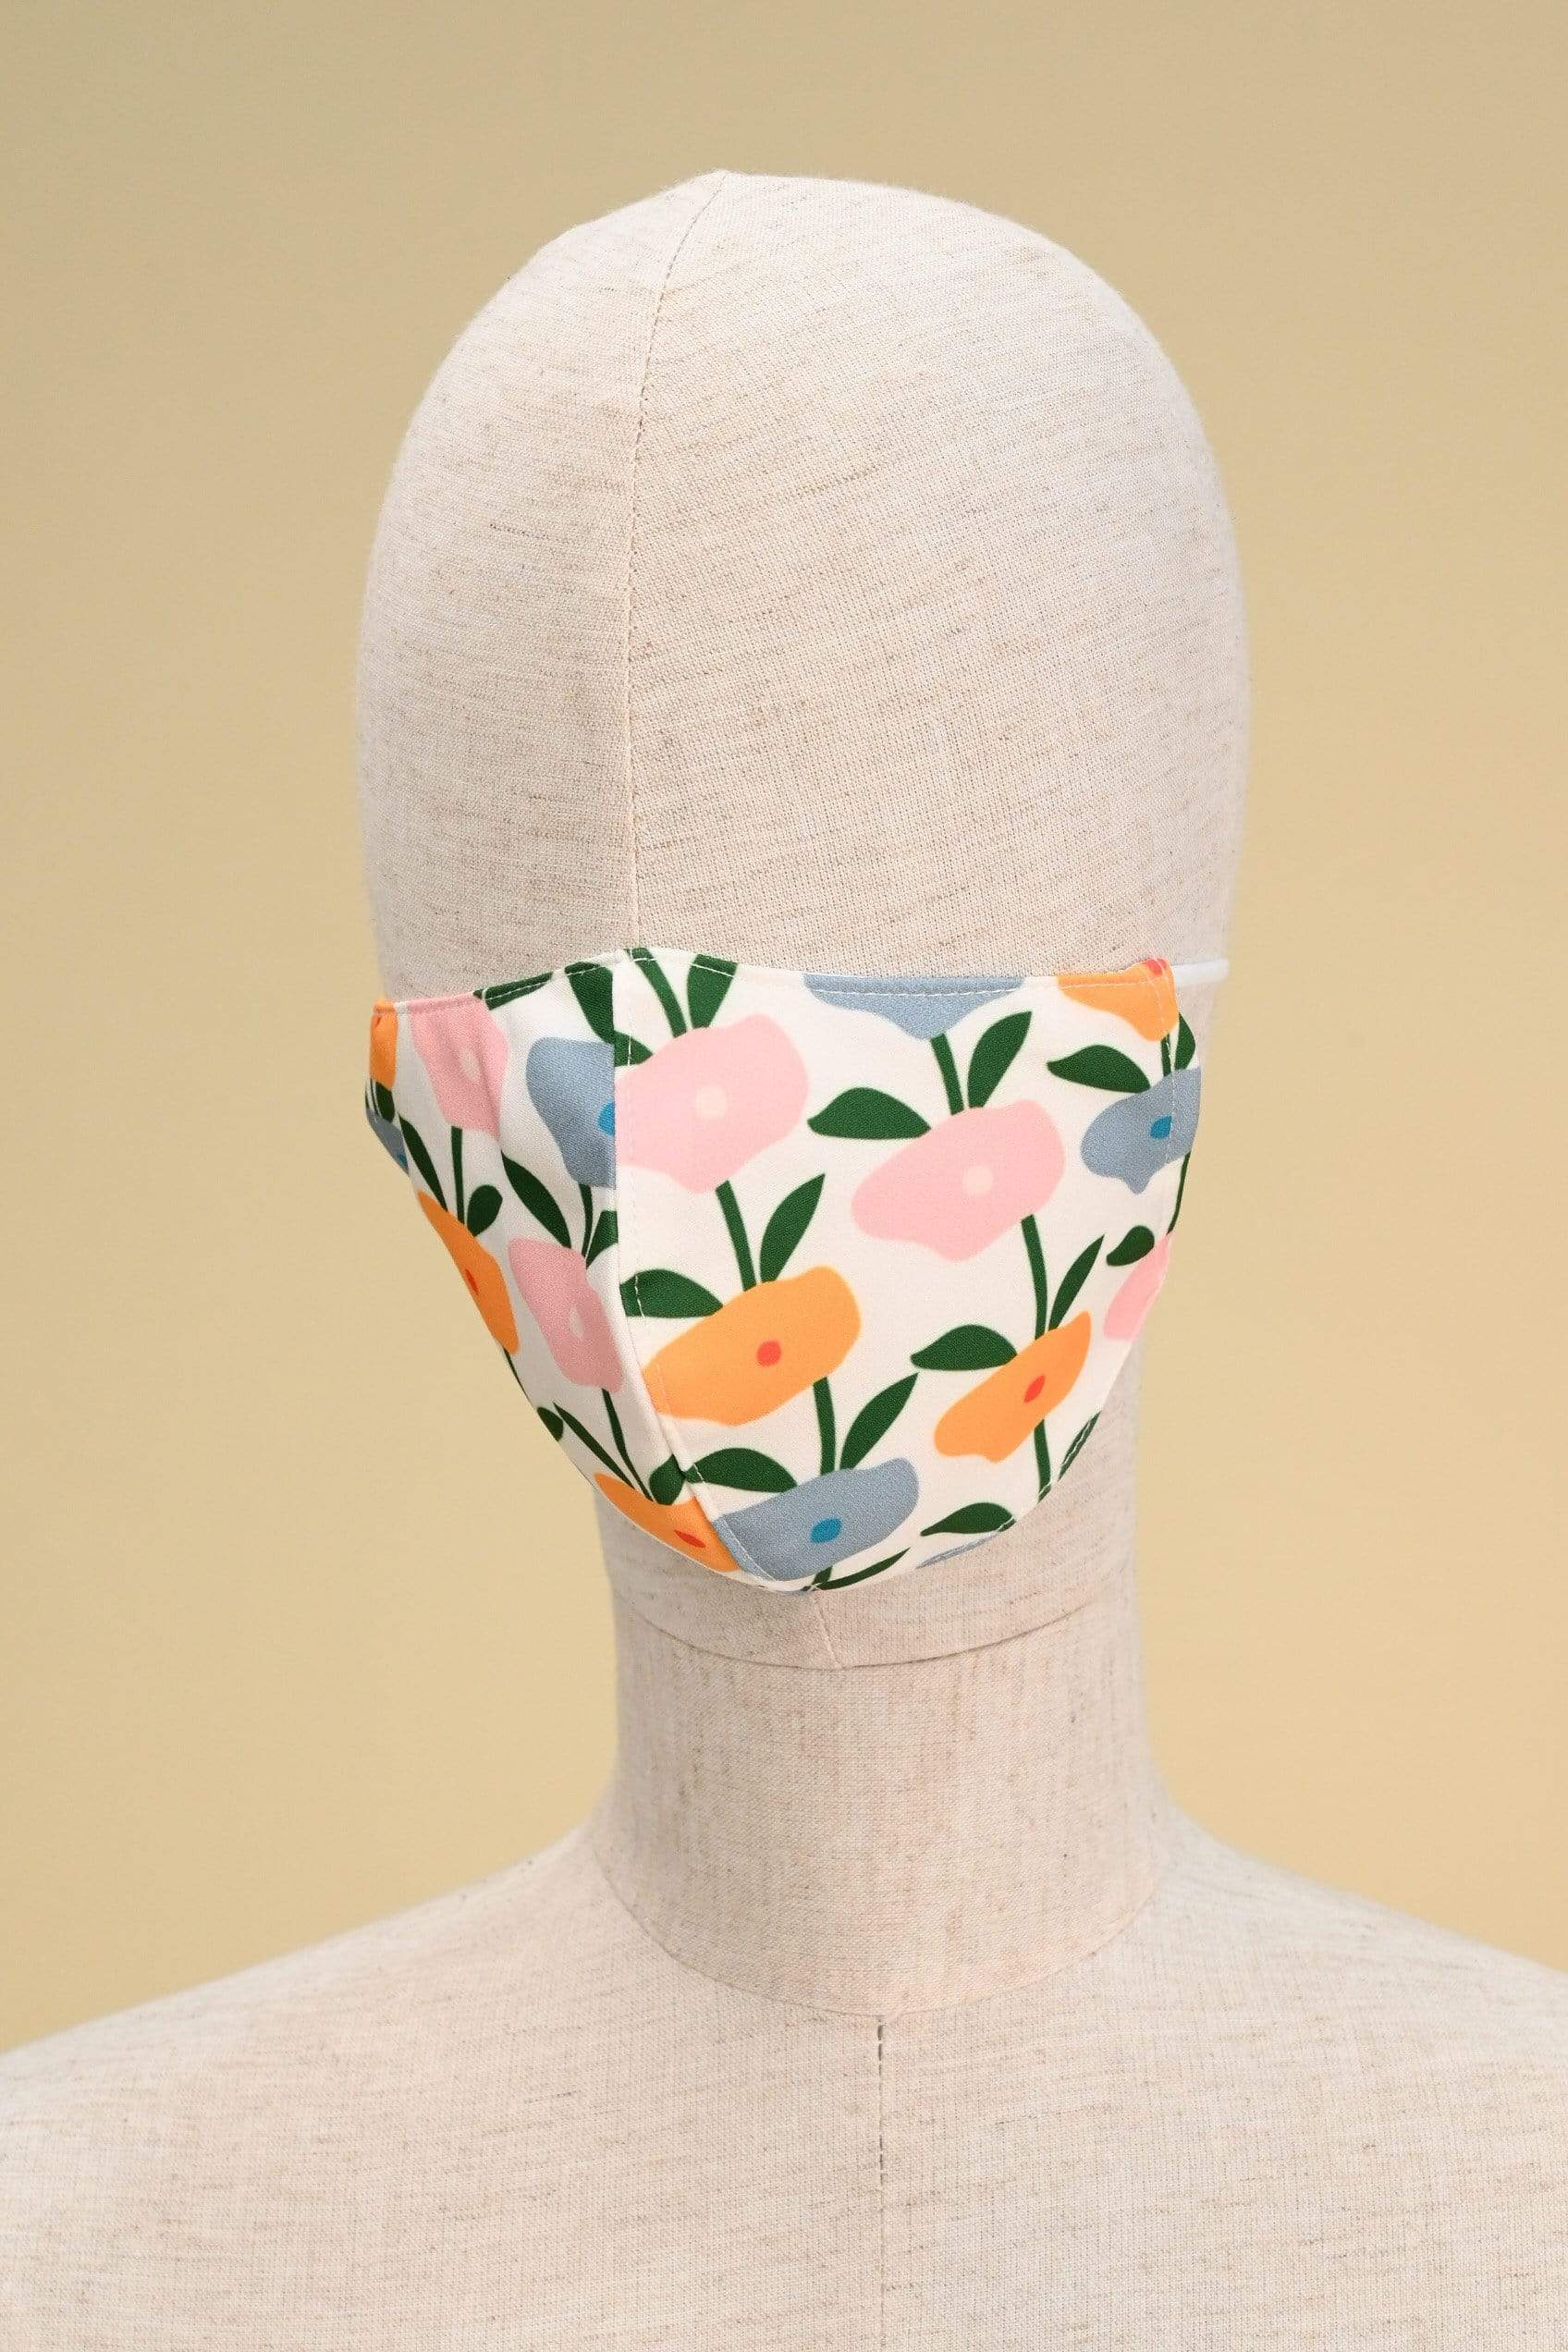 AWE Accessories XS HAPPY MASK IN BLOSSOMS